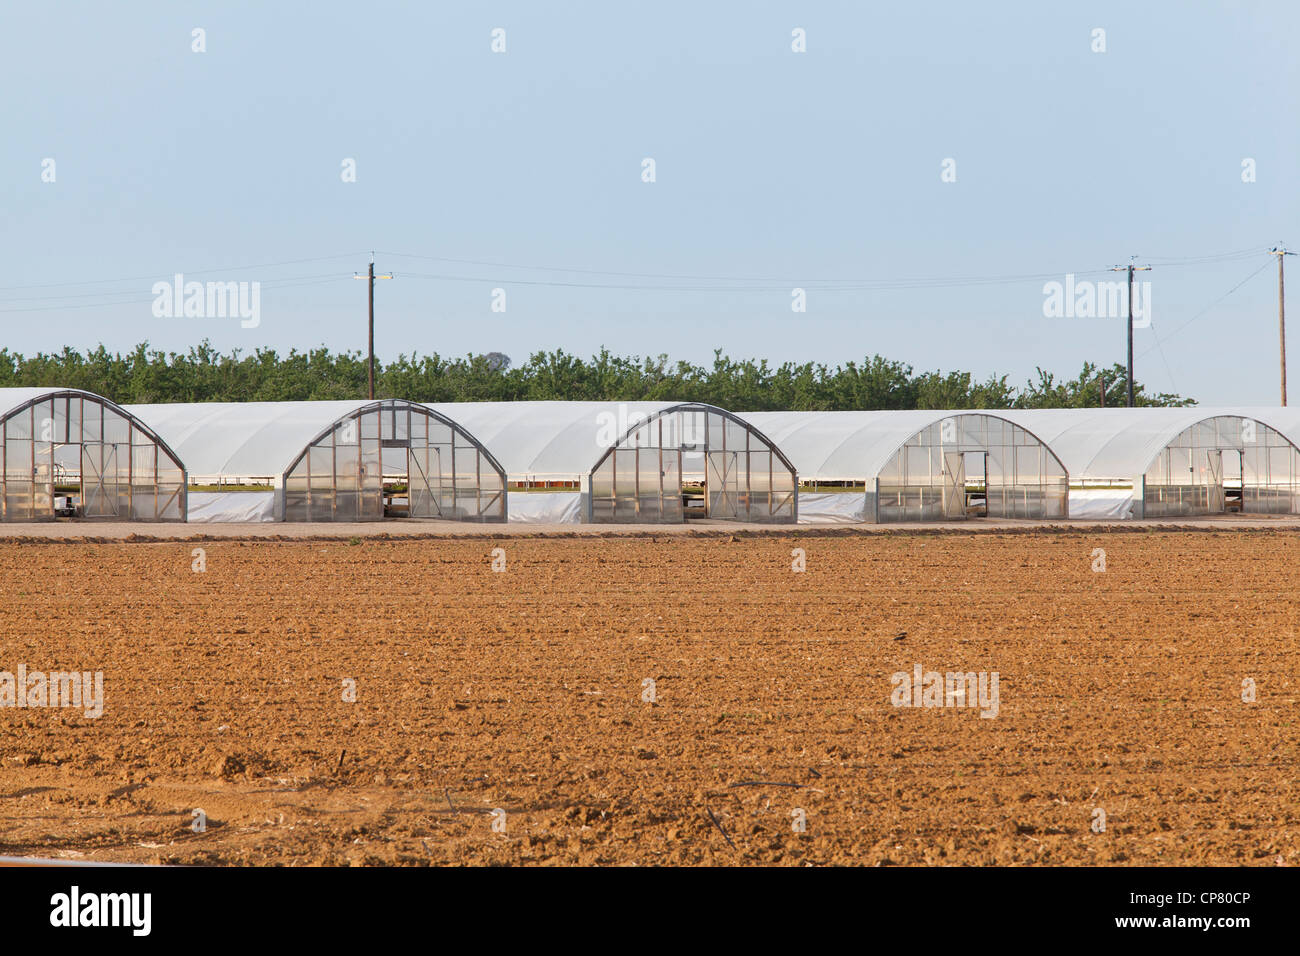 A row of greenhouses on farm - Stock Image